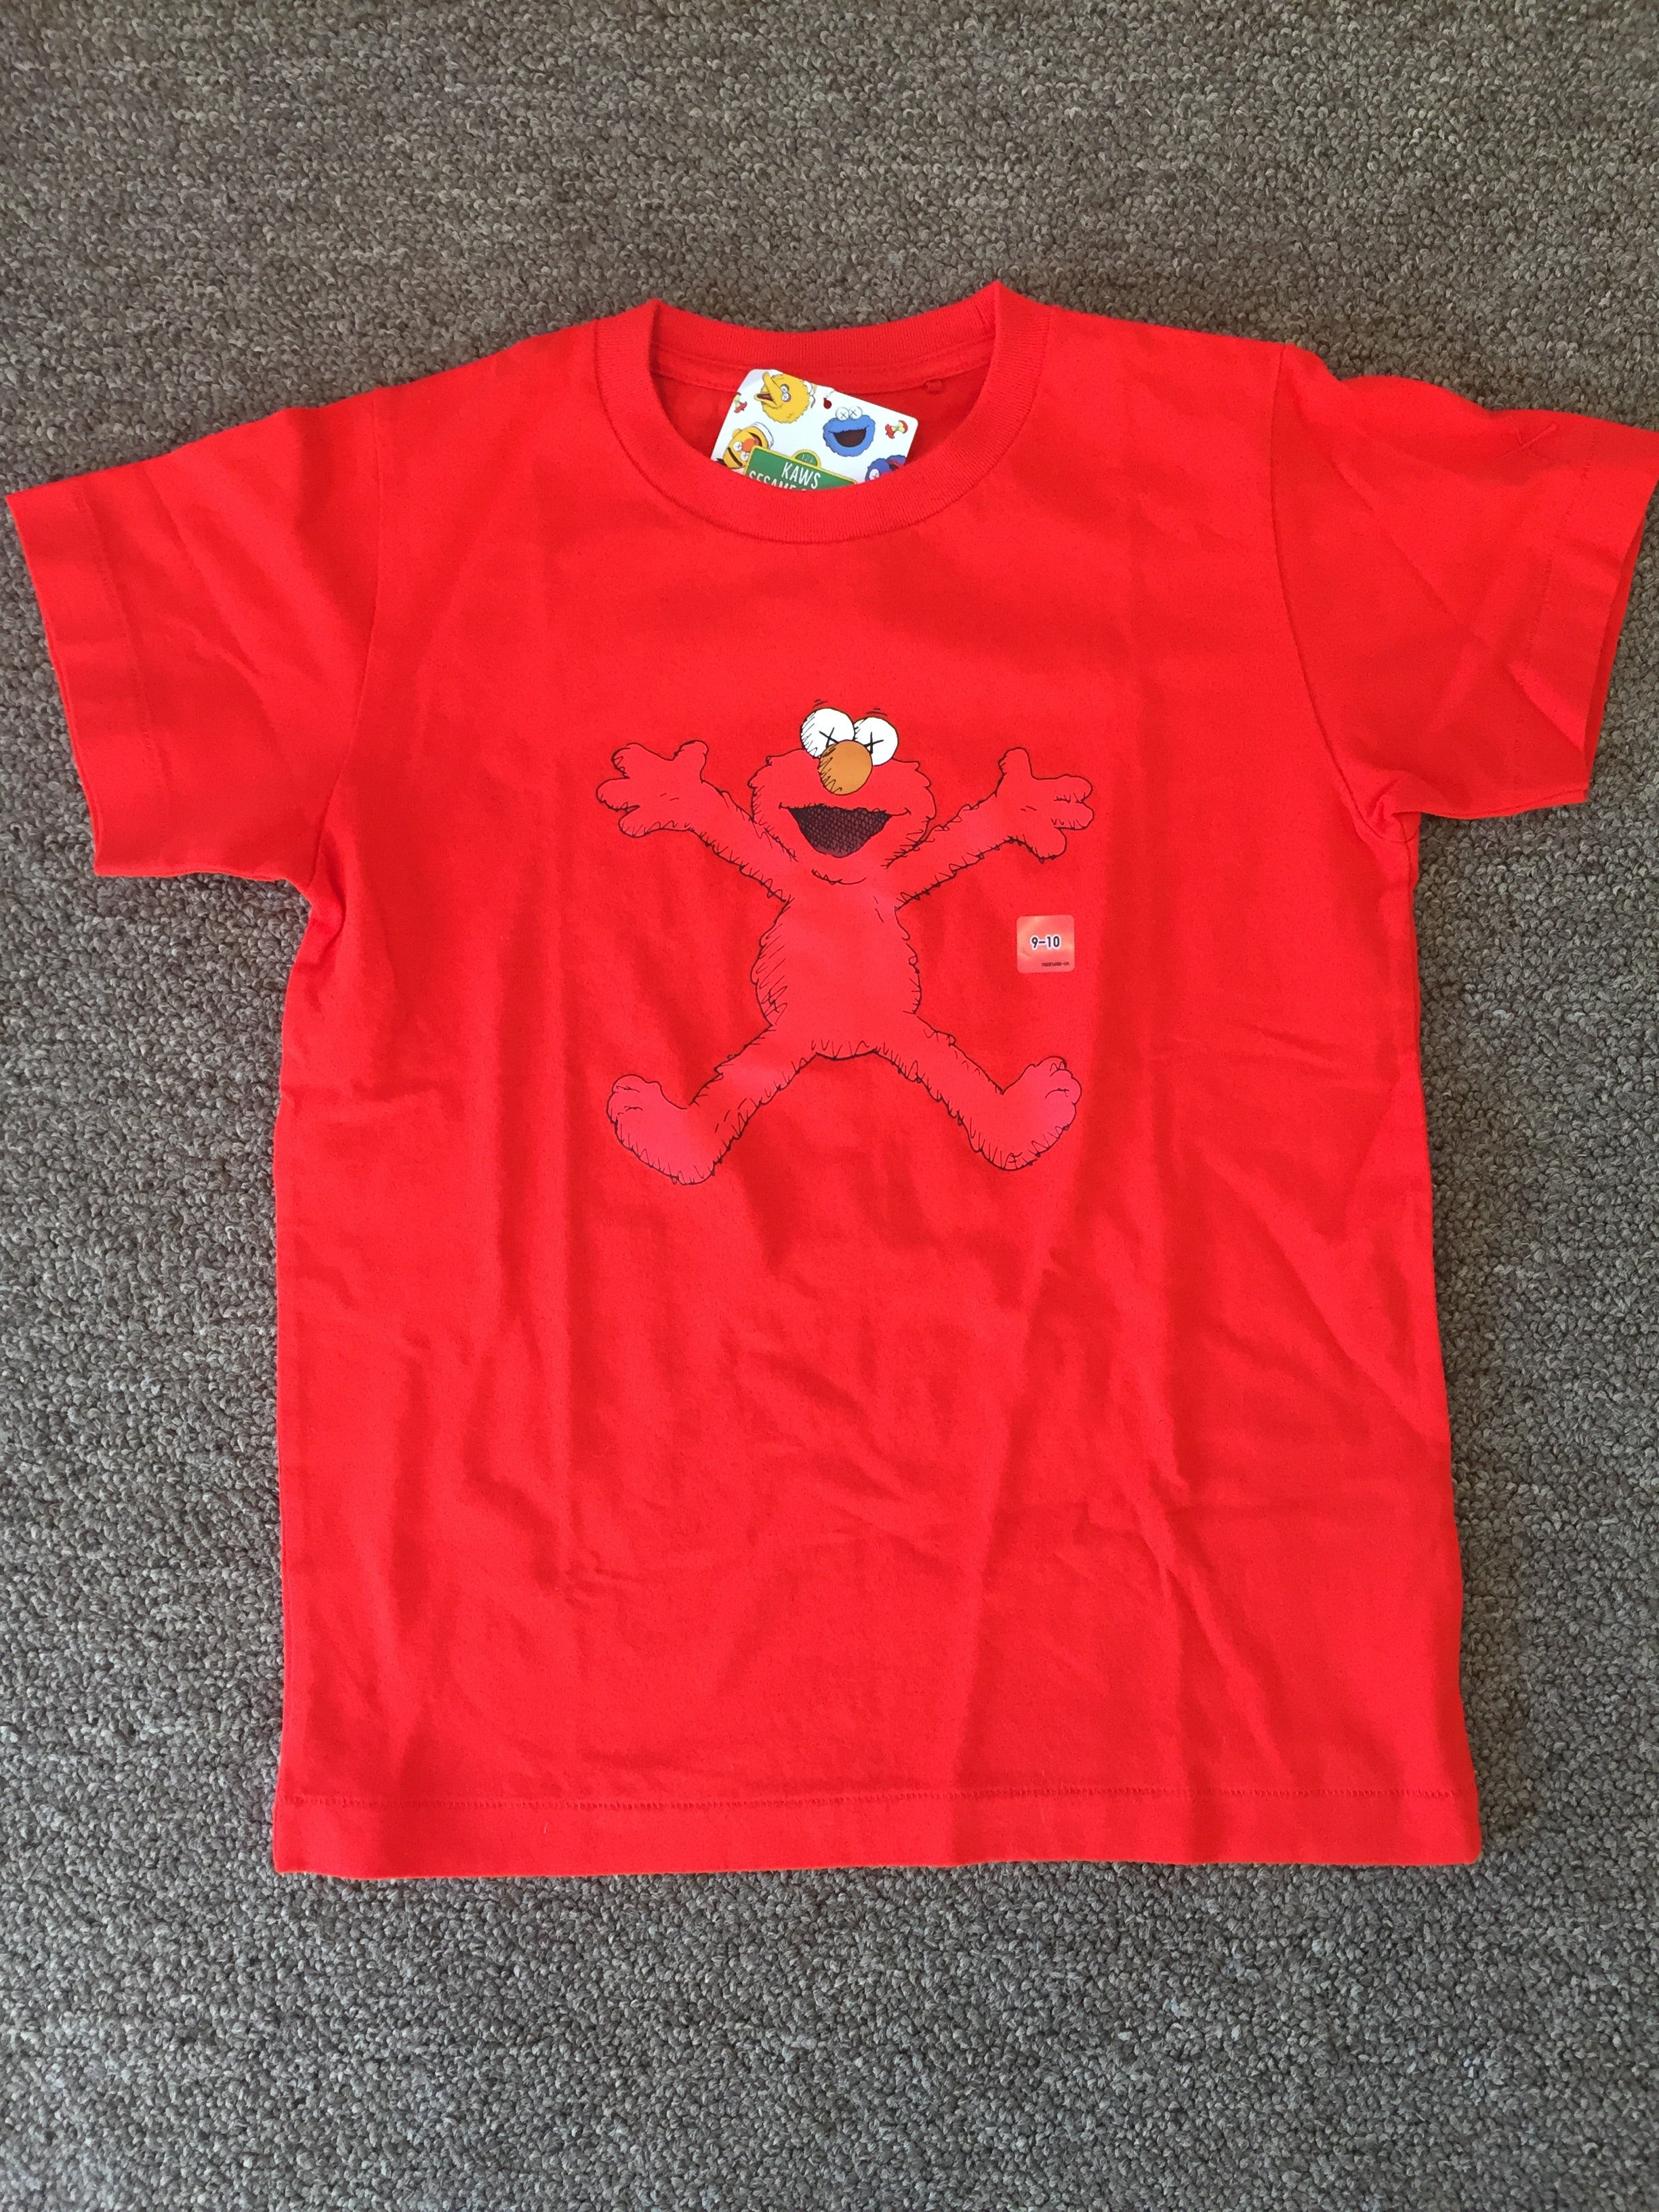 Kaws - Red - Elmo - Kids Size 9-10